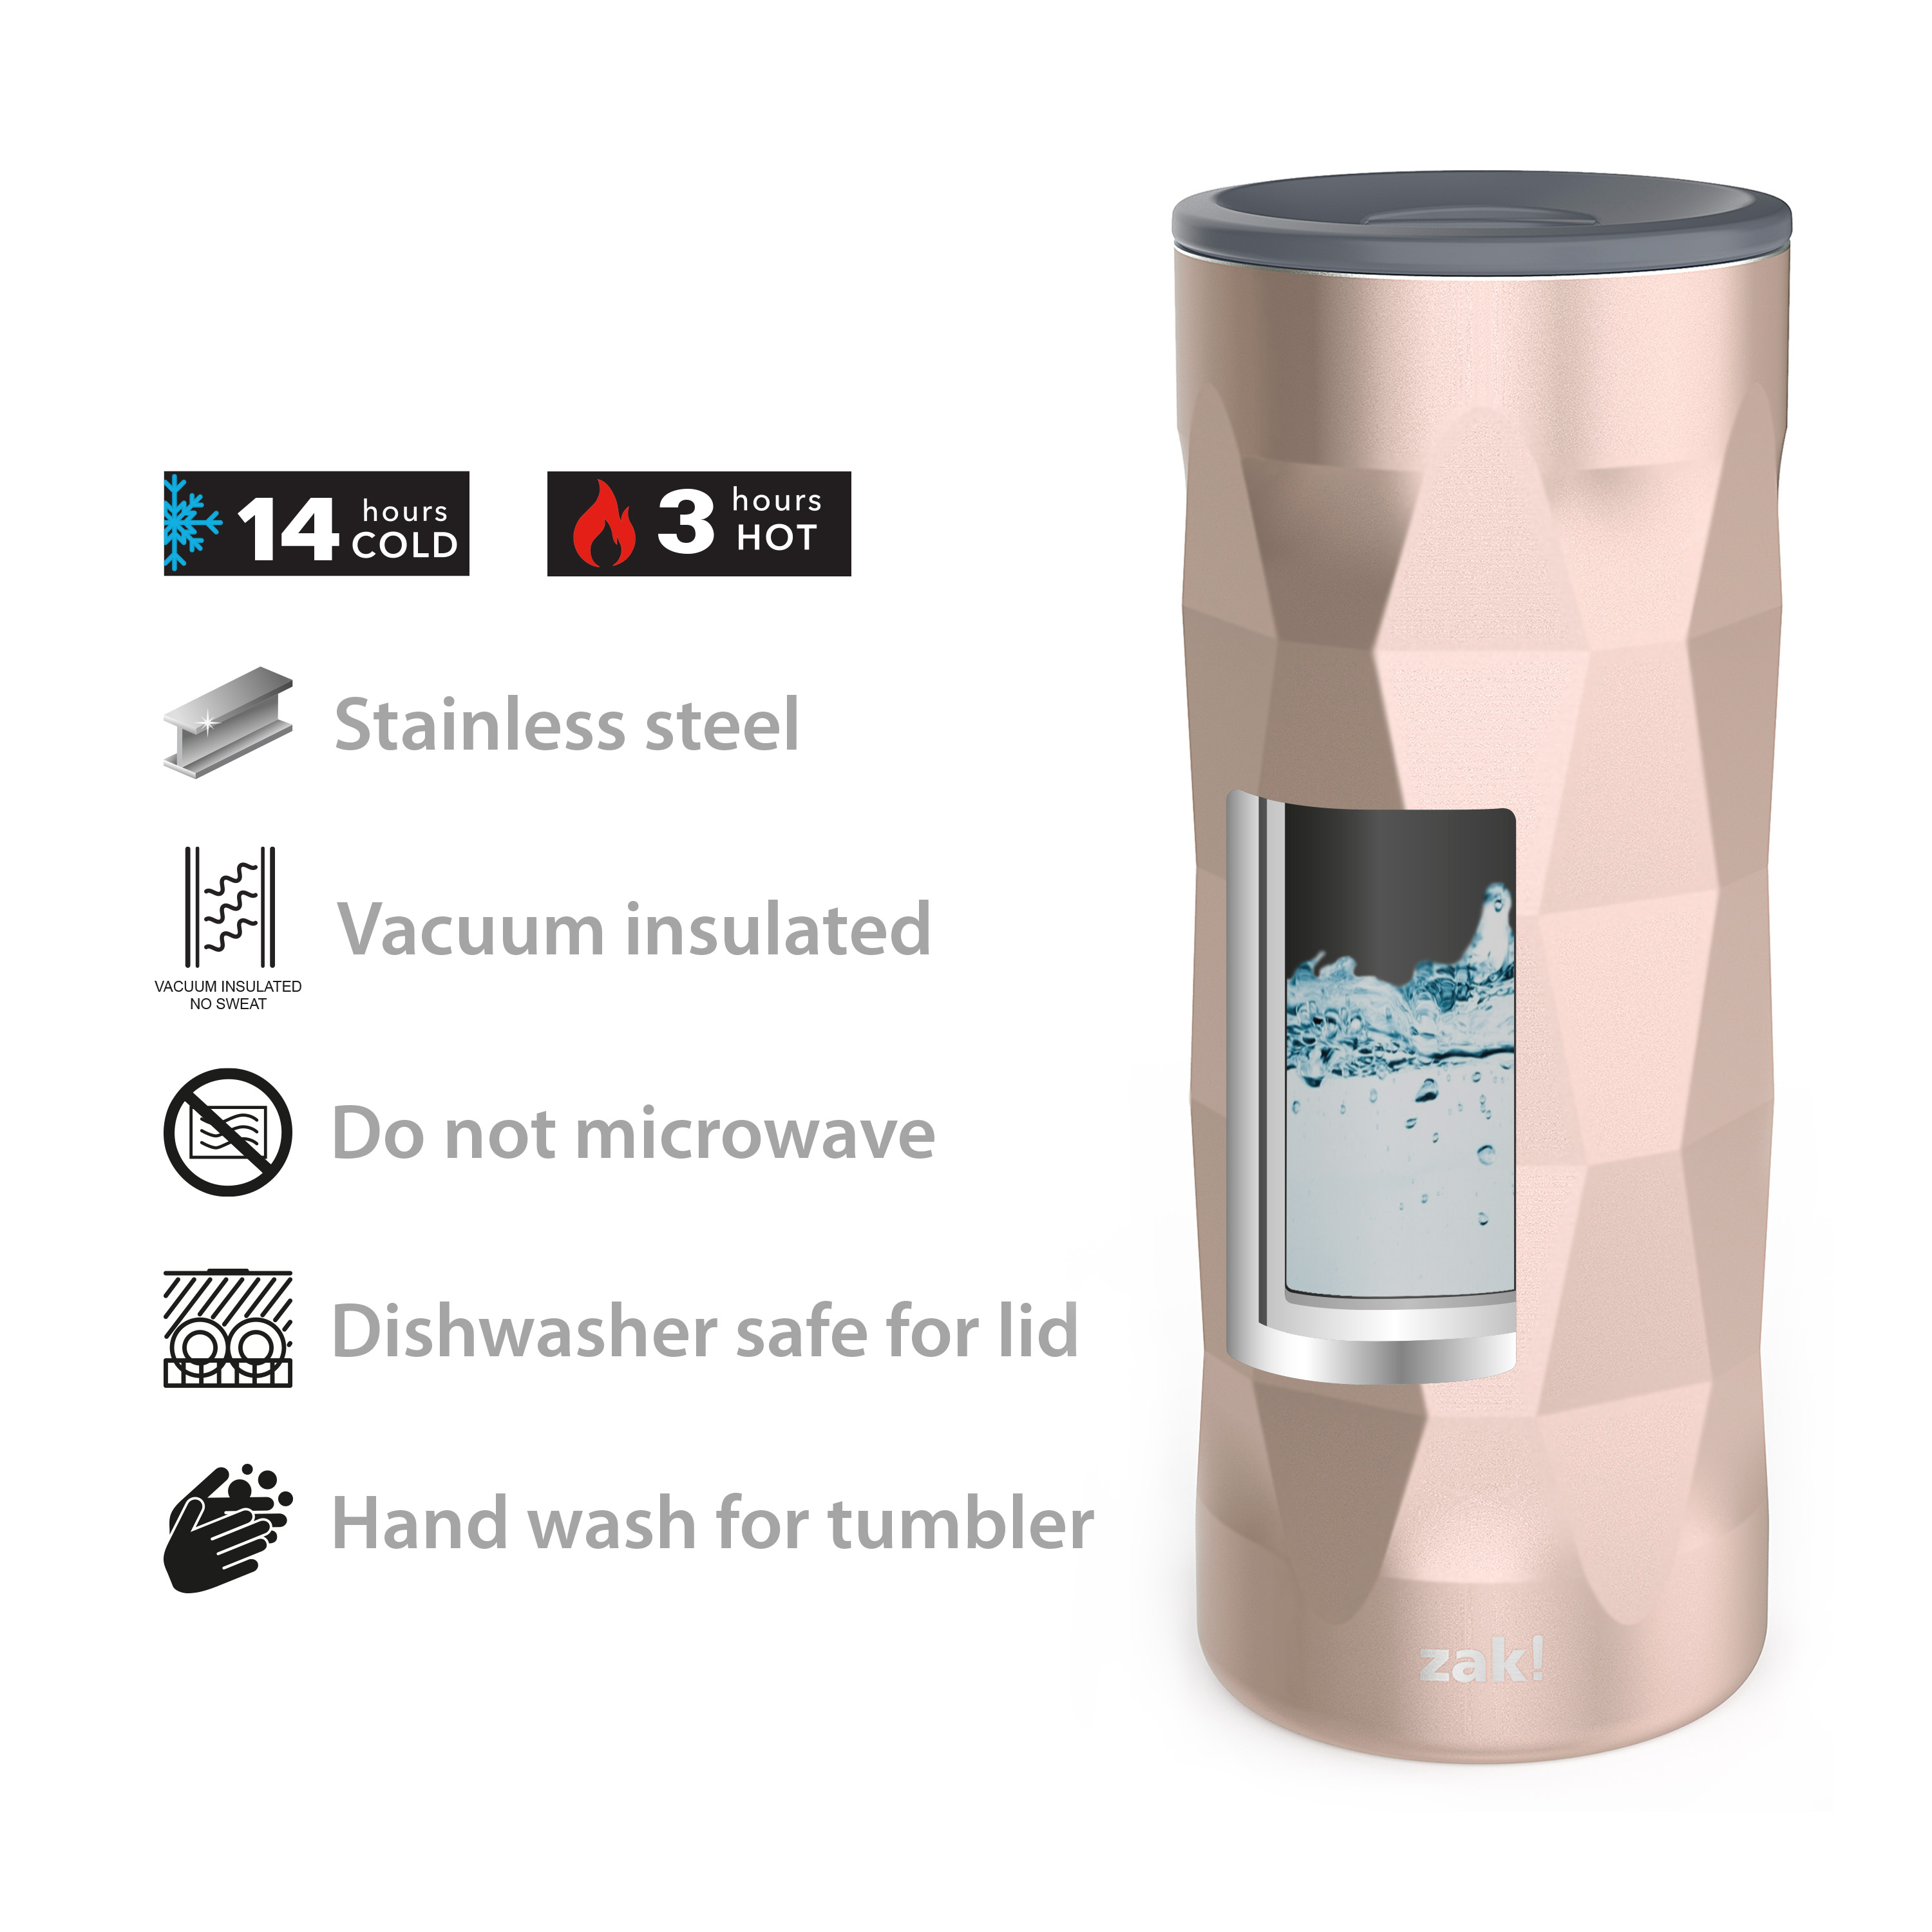 Fractal 16 ounce Vacuum Insulated Stainless Steel Tumbler, Rose Gold slideshow image 8